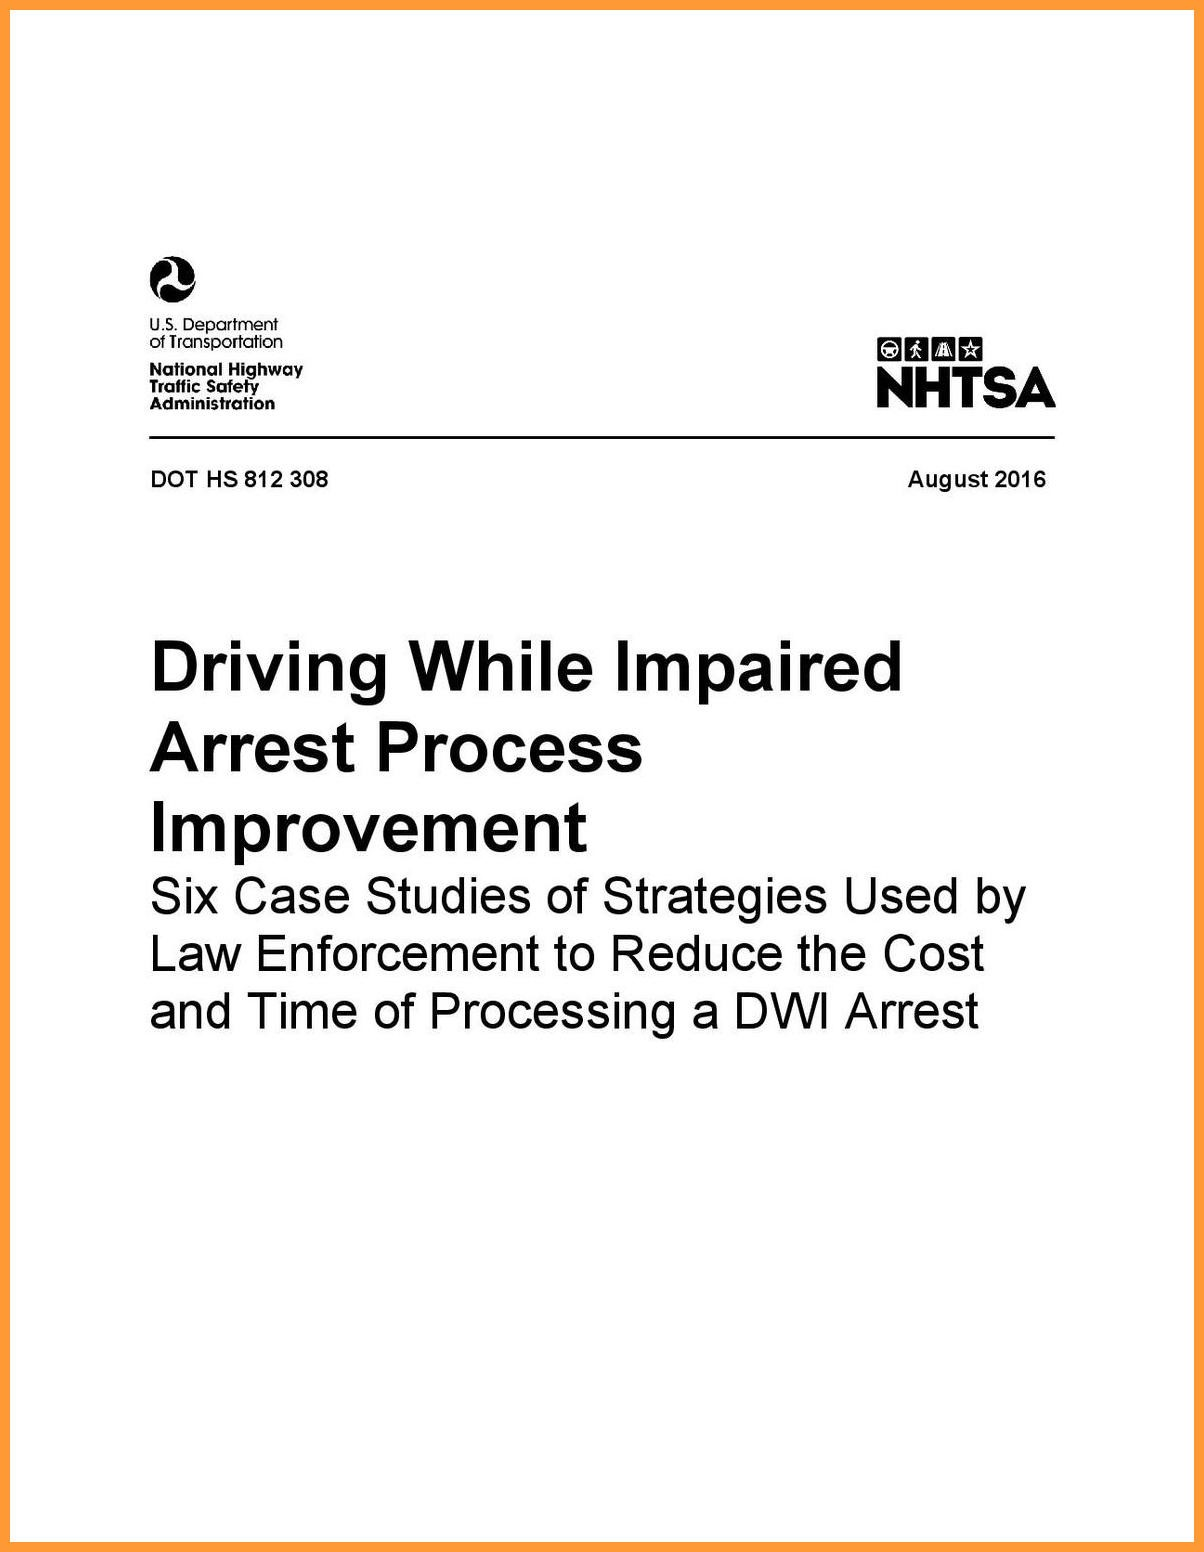 Driving While Impaired Arrest Process Improvement